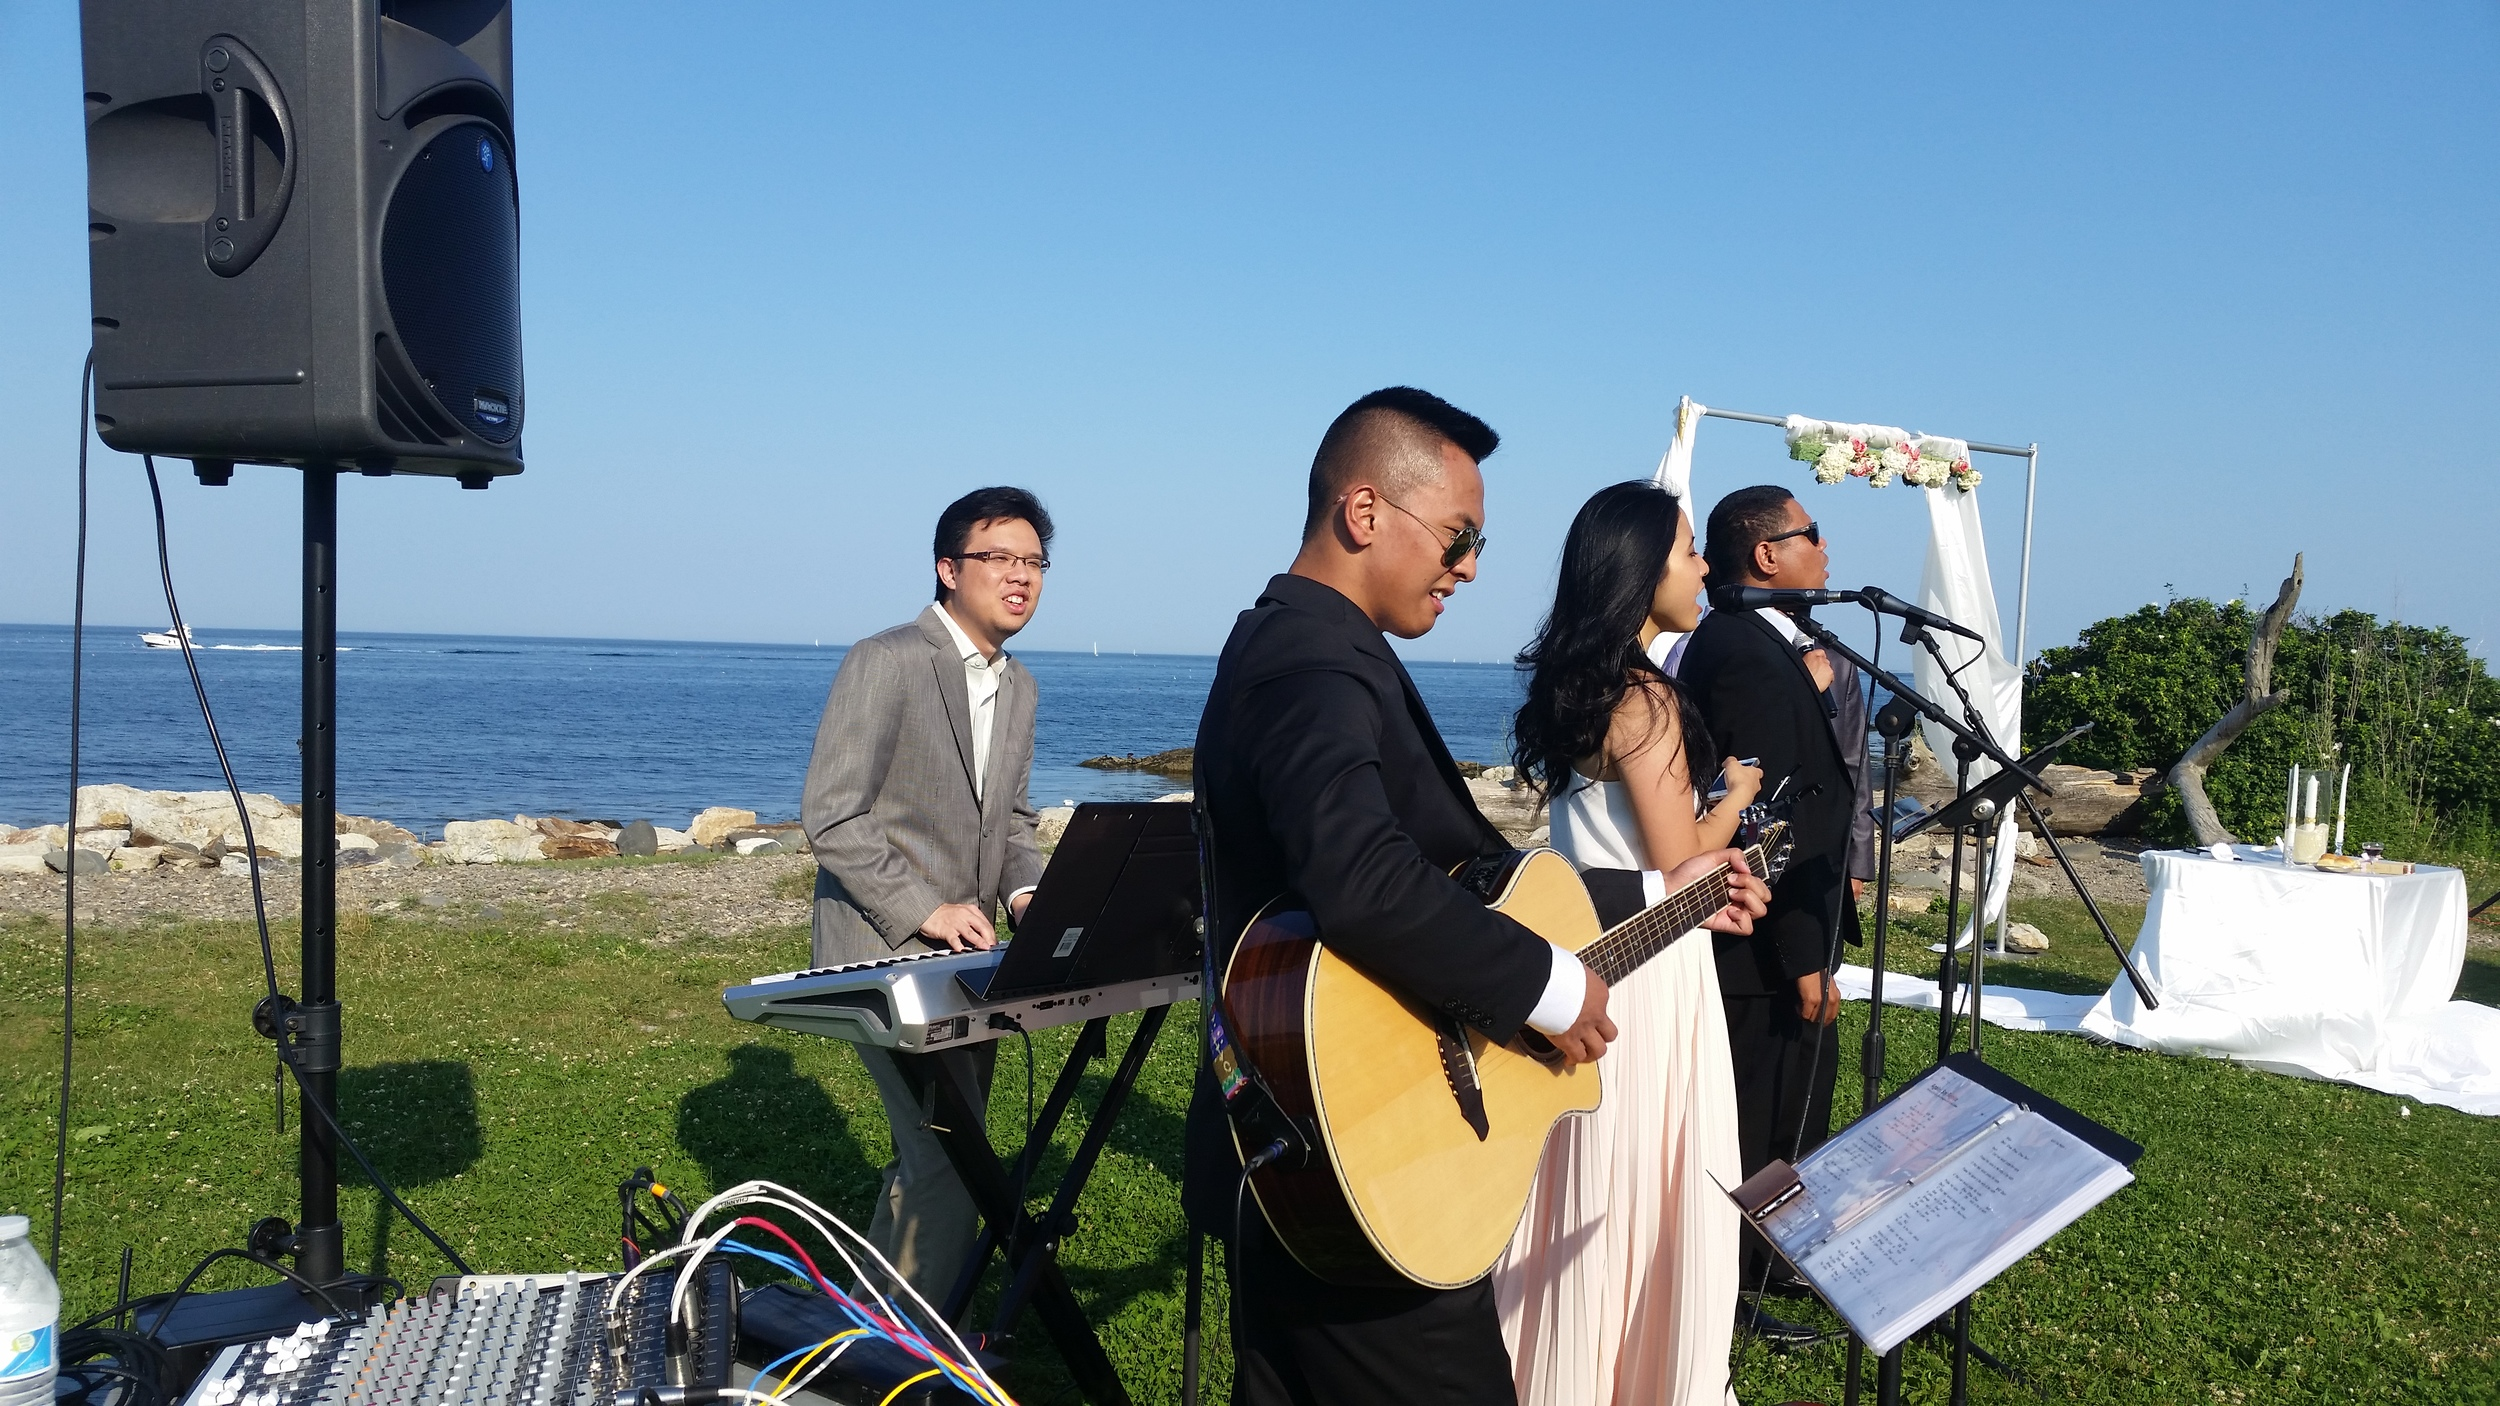 Played wedding gig  with Boston Collaborative Musicians at Seacoast Science Center, Rye, NH.